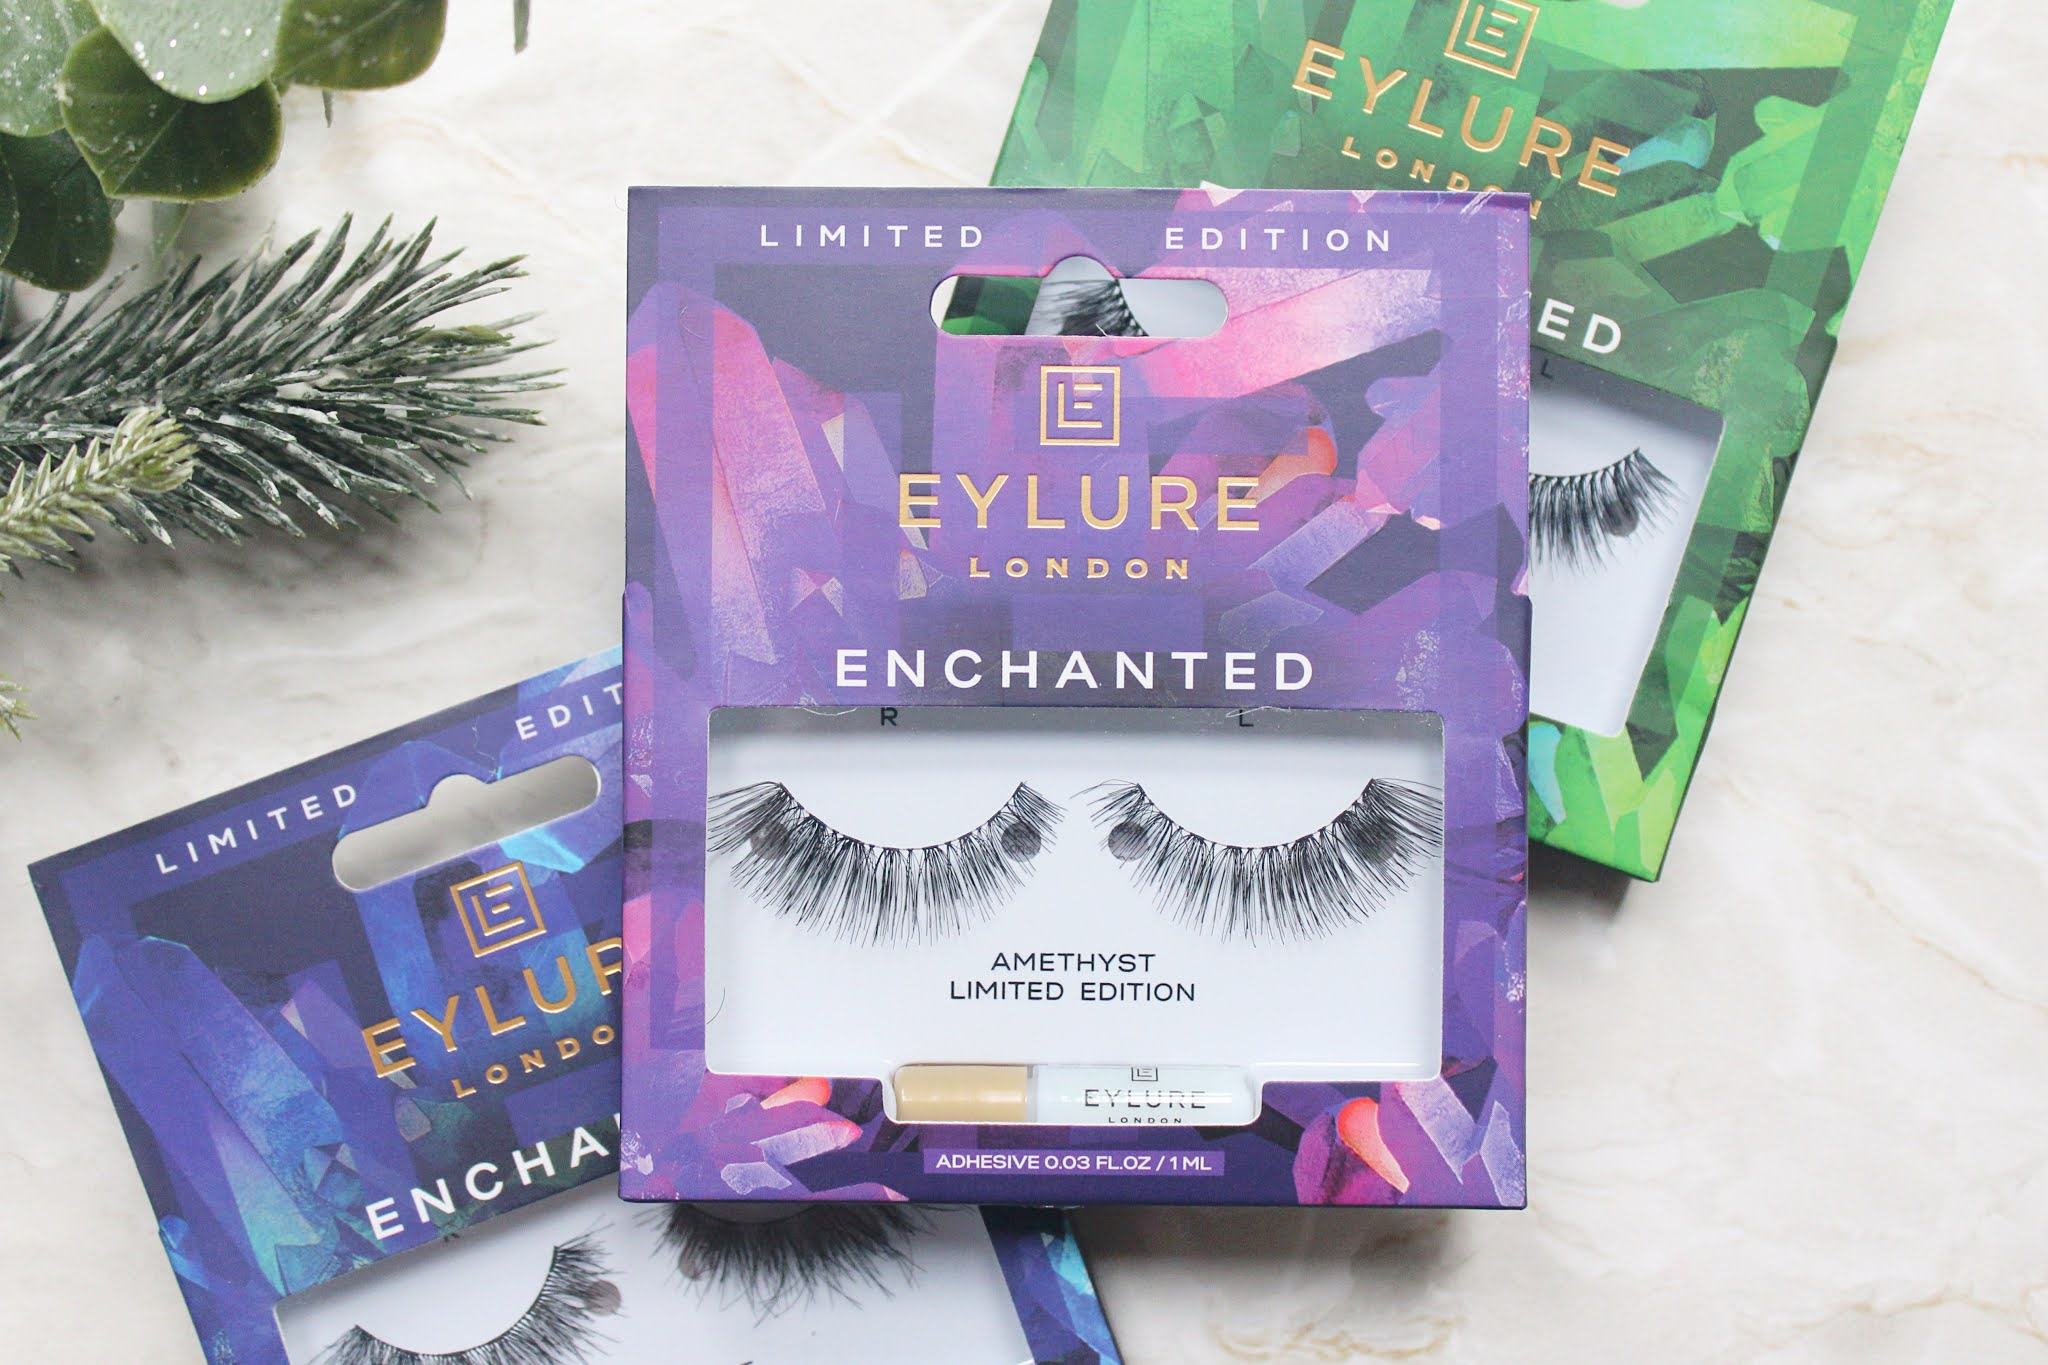 Eylure Black Friday 2020 Lash Set at Boots